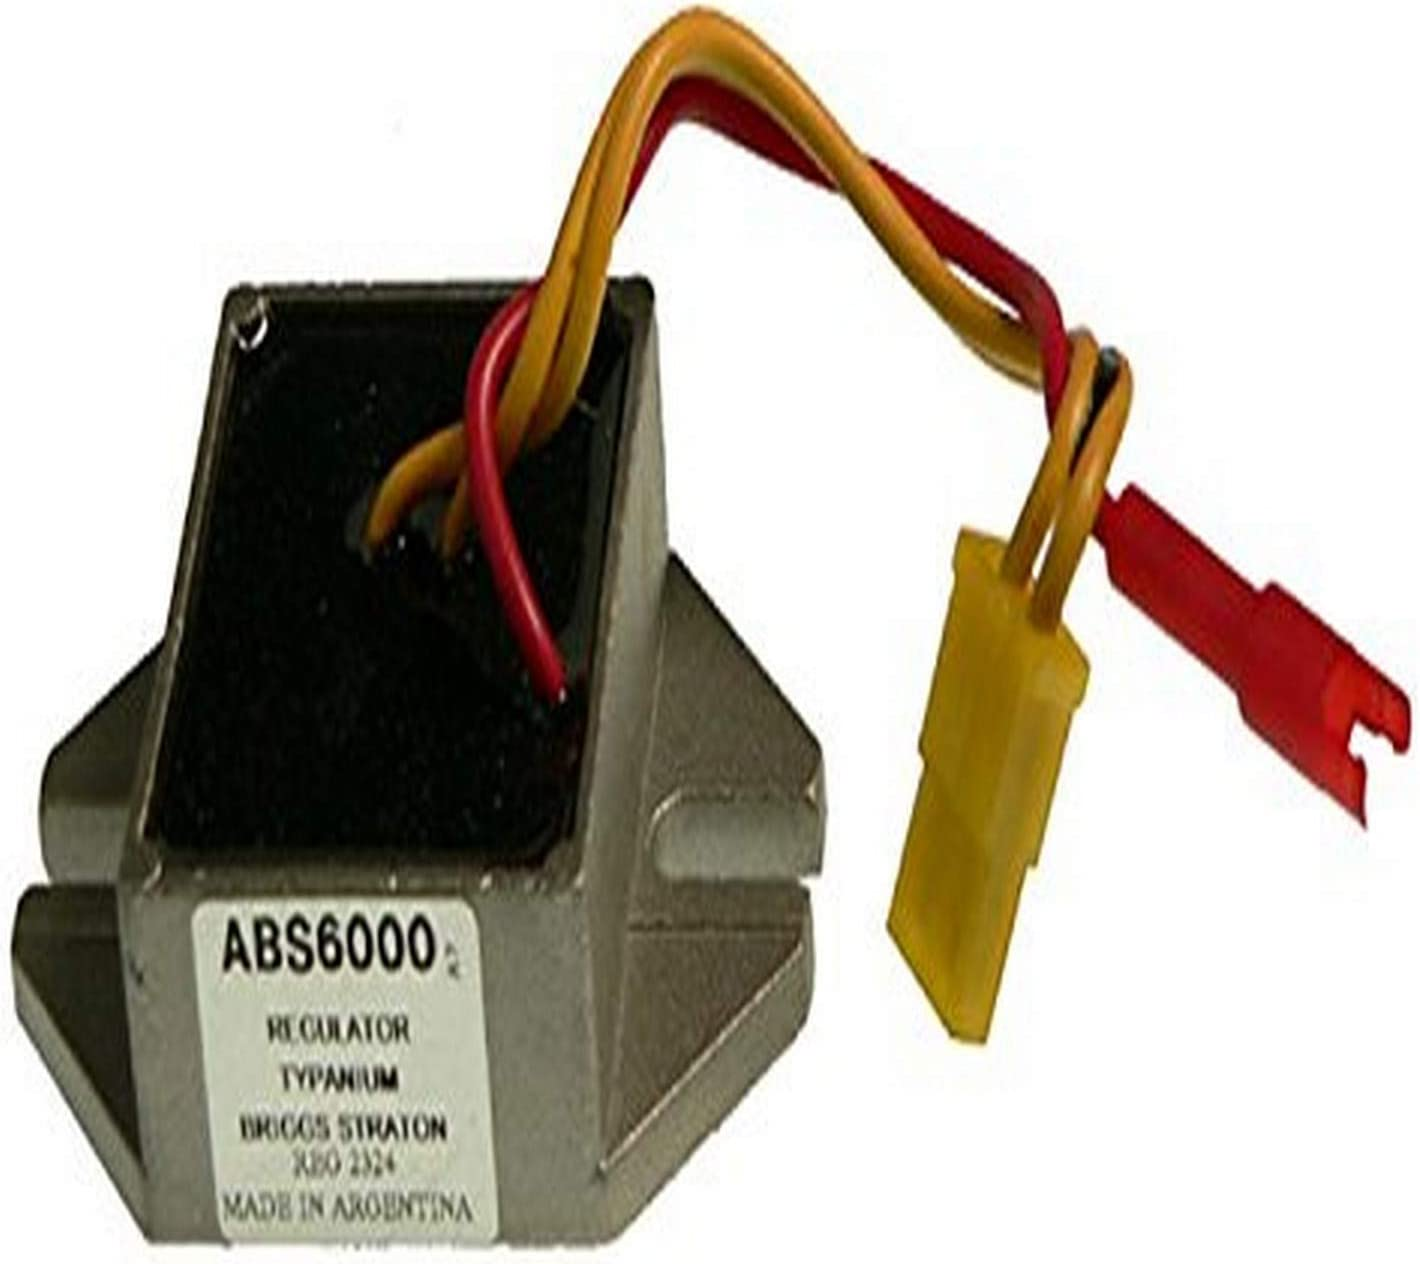 280700 351700 226400 28M700 196400 DB Electrical ABS6000 New Voltage Regulator//Rectifier for Briggs Stratton Models 192400